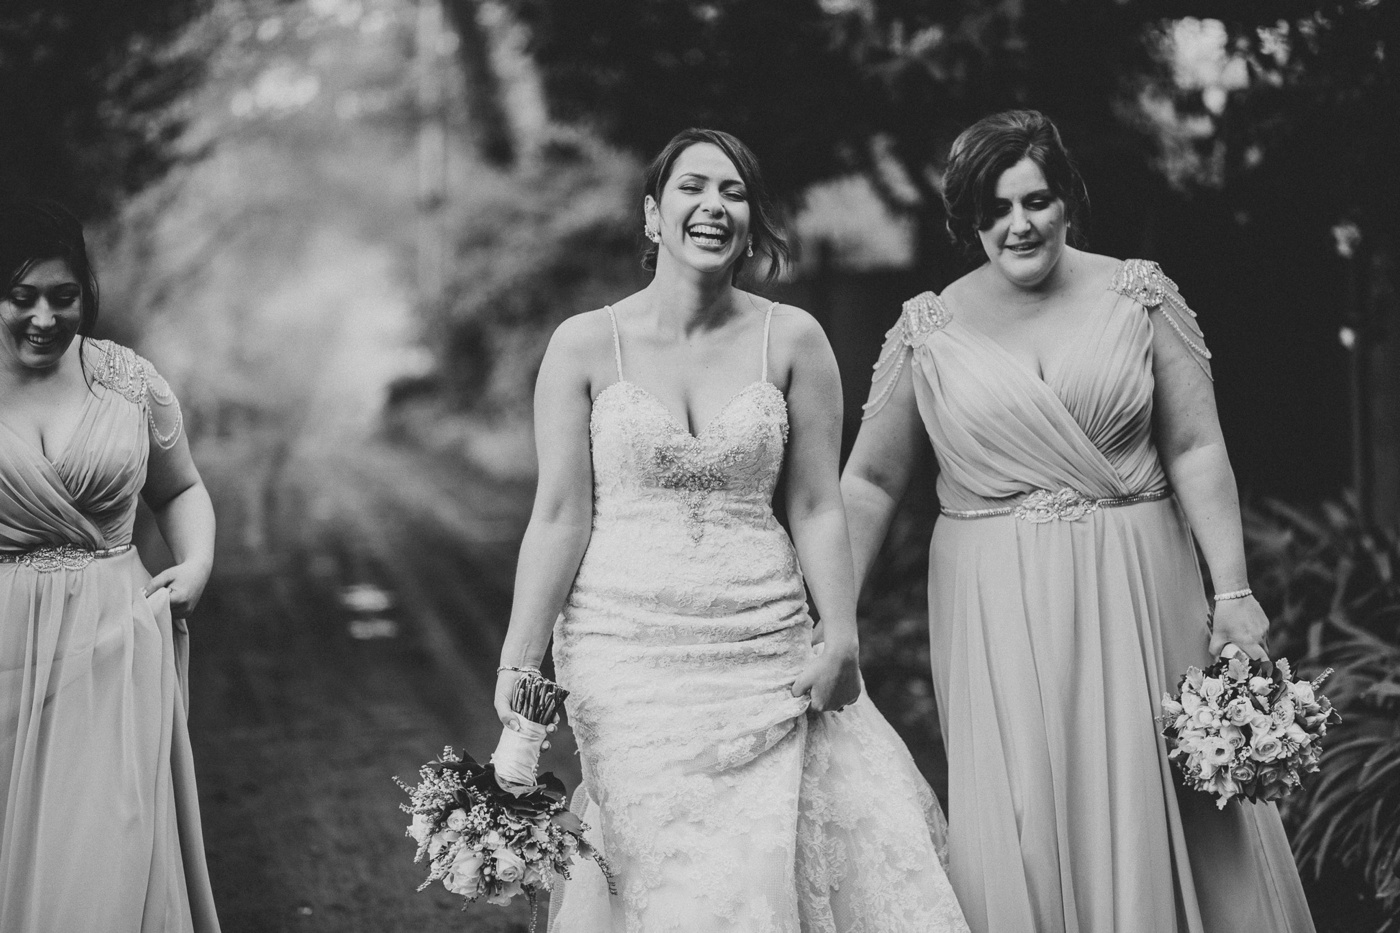 wesleybianca_dandenongs-sherbrooke-poets-lane-wedding_melbourne-quirky-fun-candid-wedding-photography_45